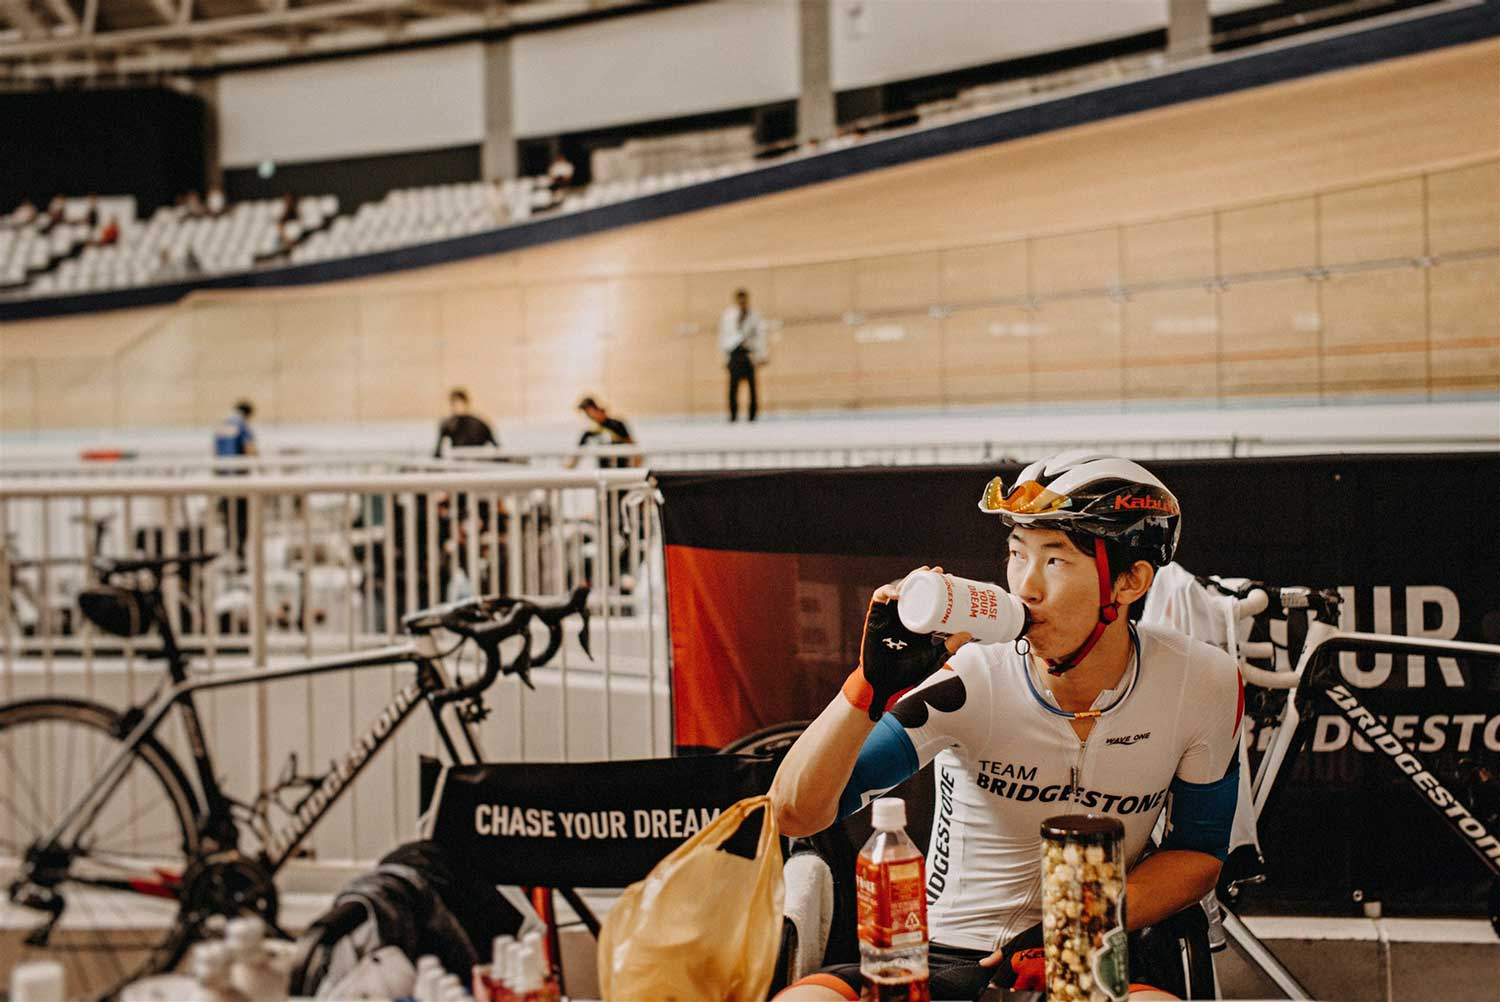 Japanese Olympic track cyclist prepares for the National Keirin Championships at Izu Velodrome, Japan